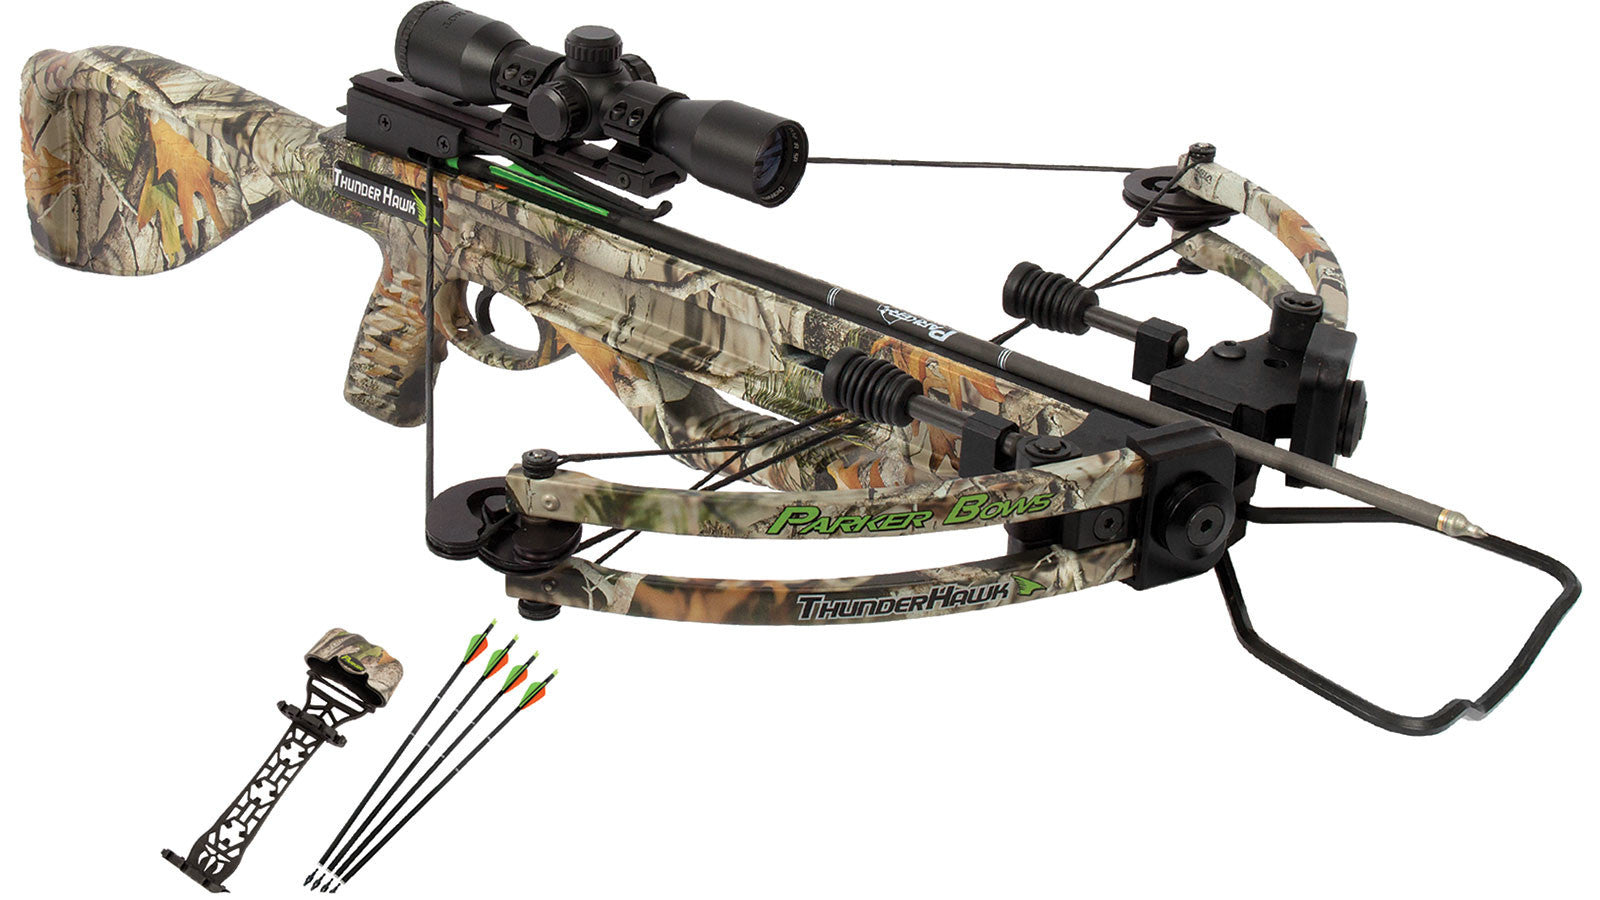 Parker Bows X221-MR ThunderHawk Crossbow Package with 3X MR Scope